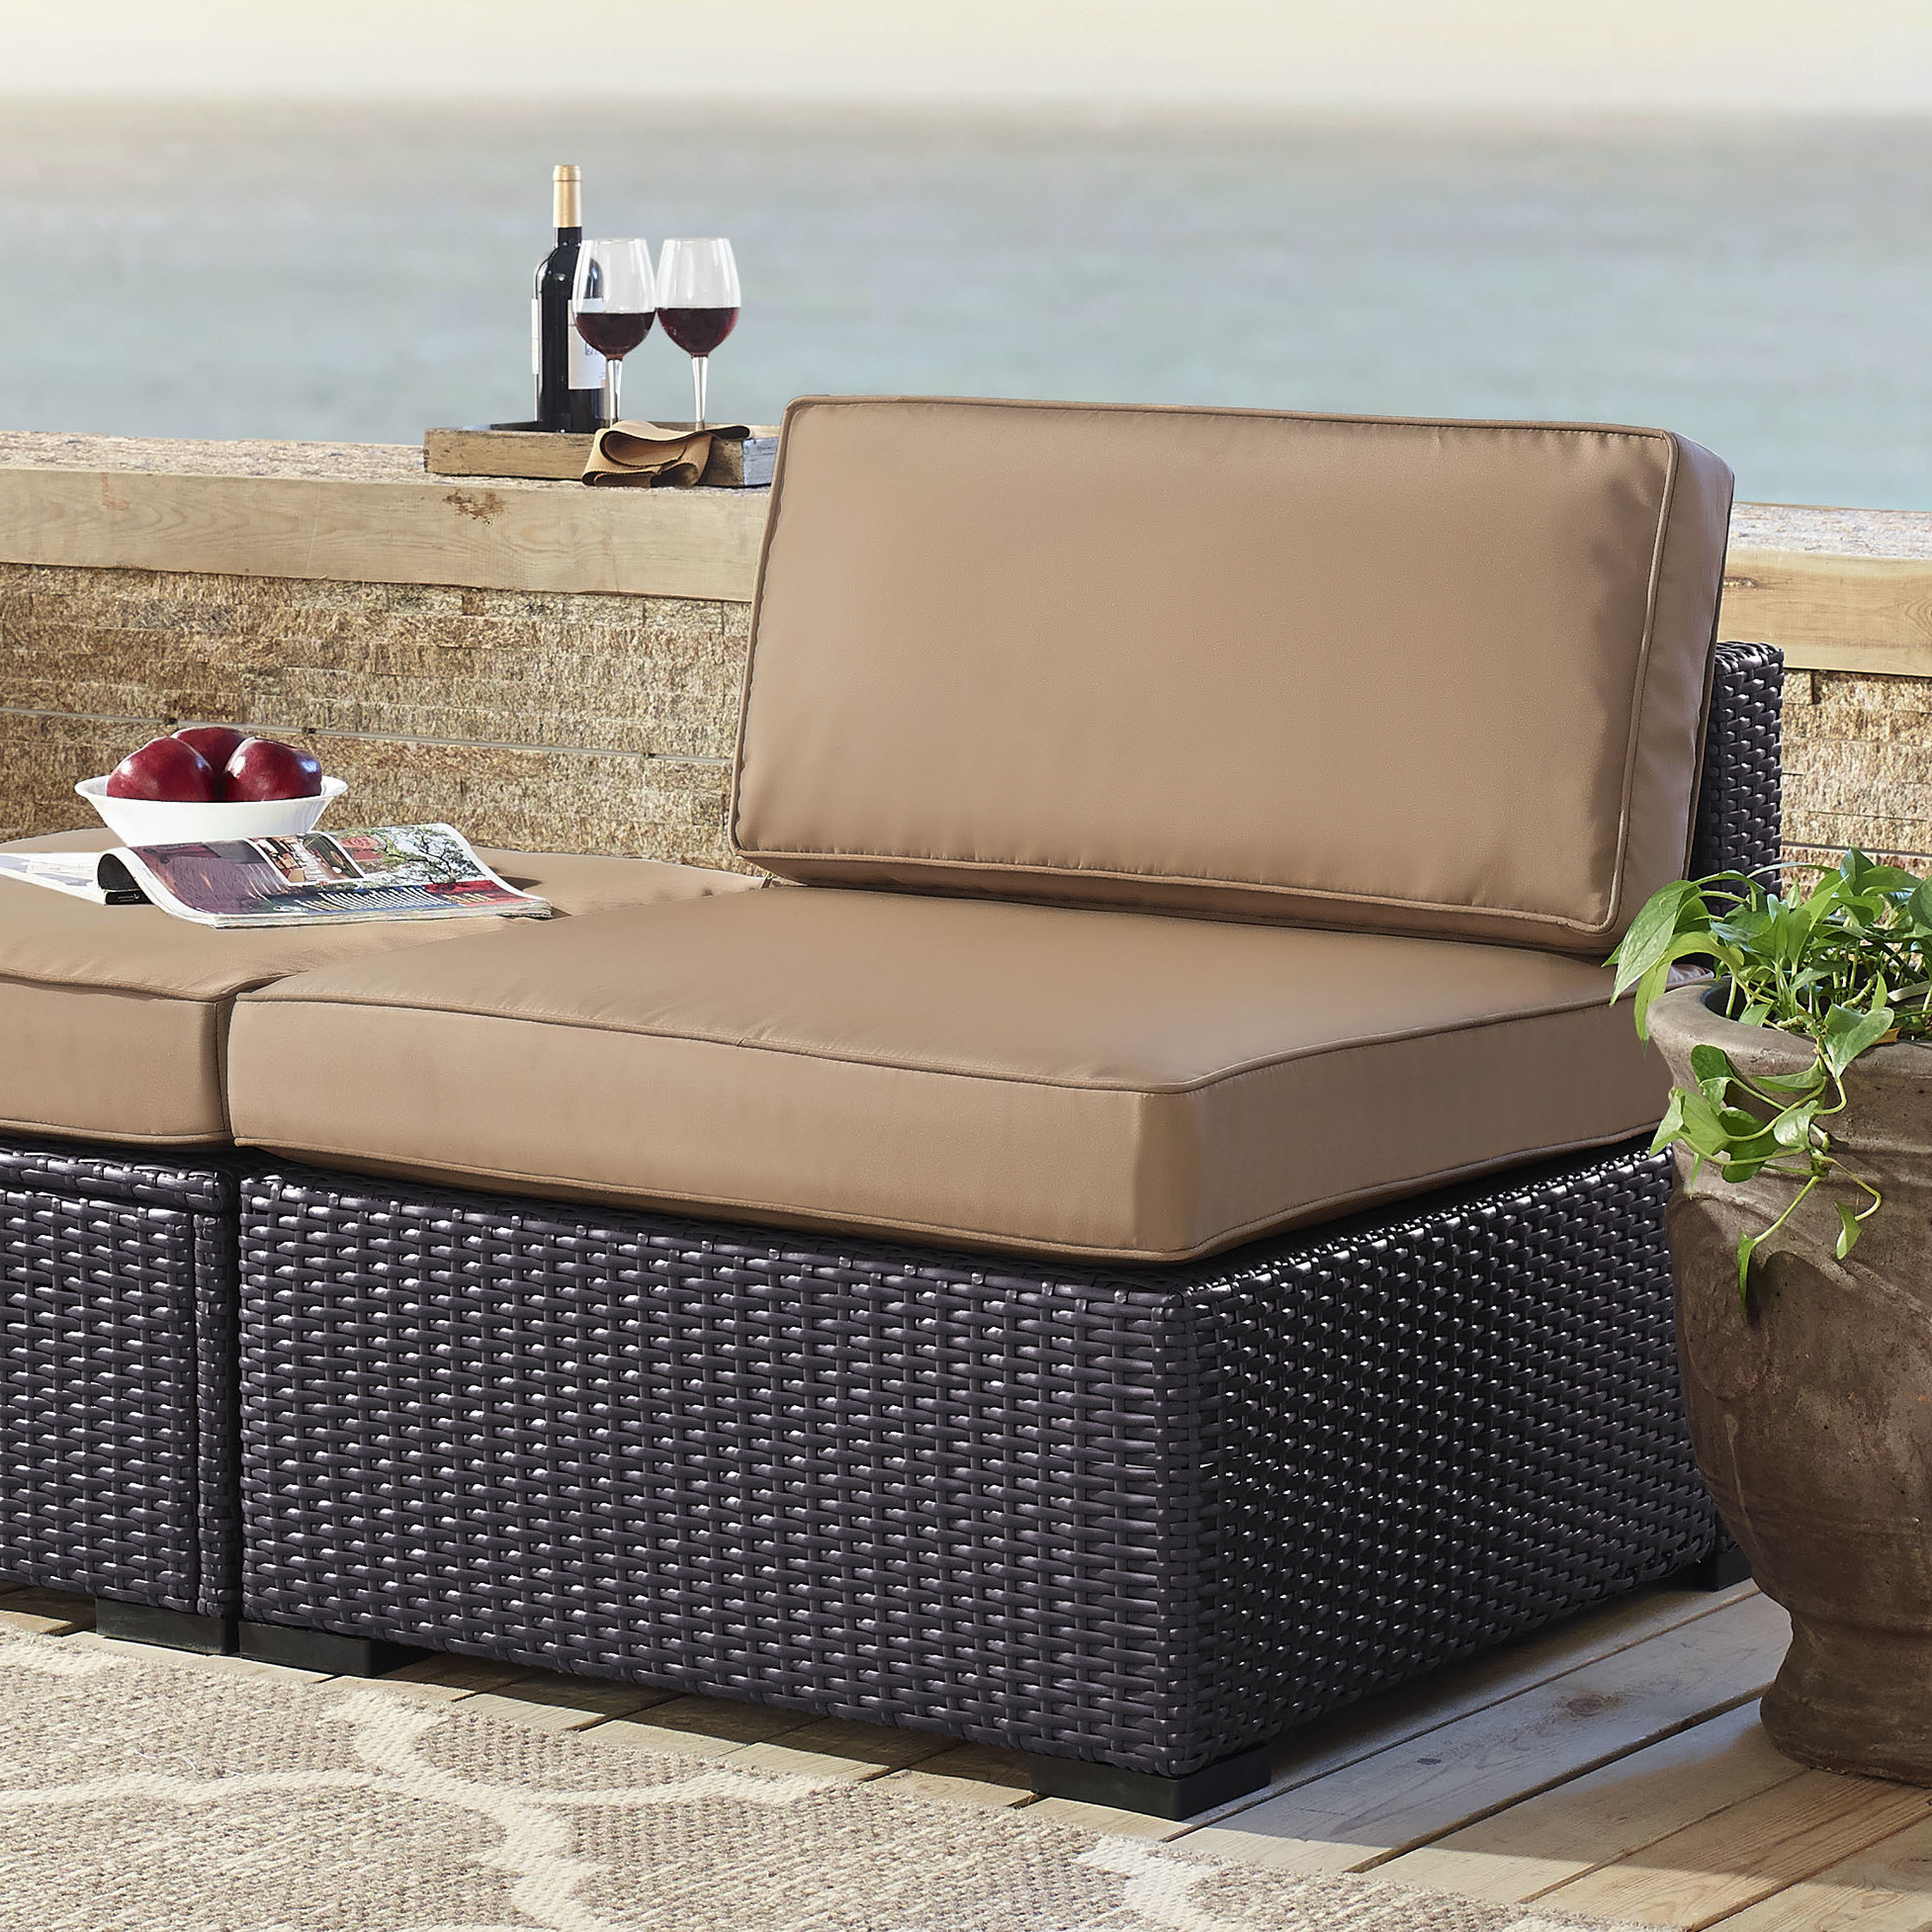 Stapleton Wicker Resin Patio Sofas With Cushions In Best And Newest Seaton Patio Chair With Cushions (View 11 of 20)